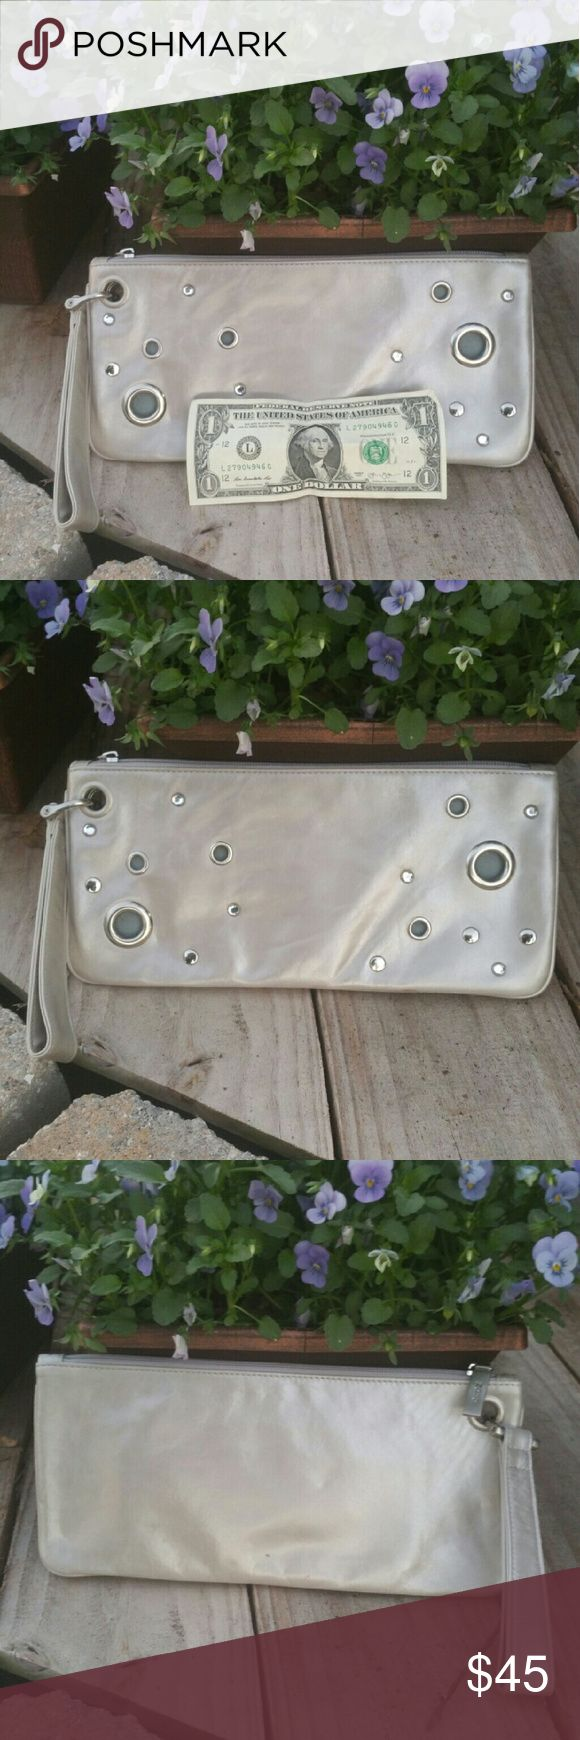 "HOBO Large Wristlet Clutch Silver Rhinestone Gromm HOBO Large Wristlet Clutch Silver Rhinestone Grommet great gently used condition. Measures 11"" X 5"" HOBO Bags Clutches & Wristlets"